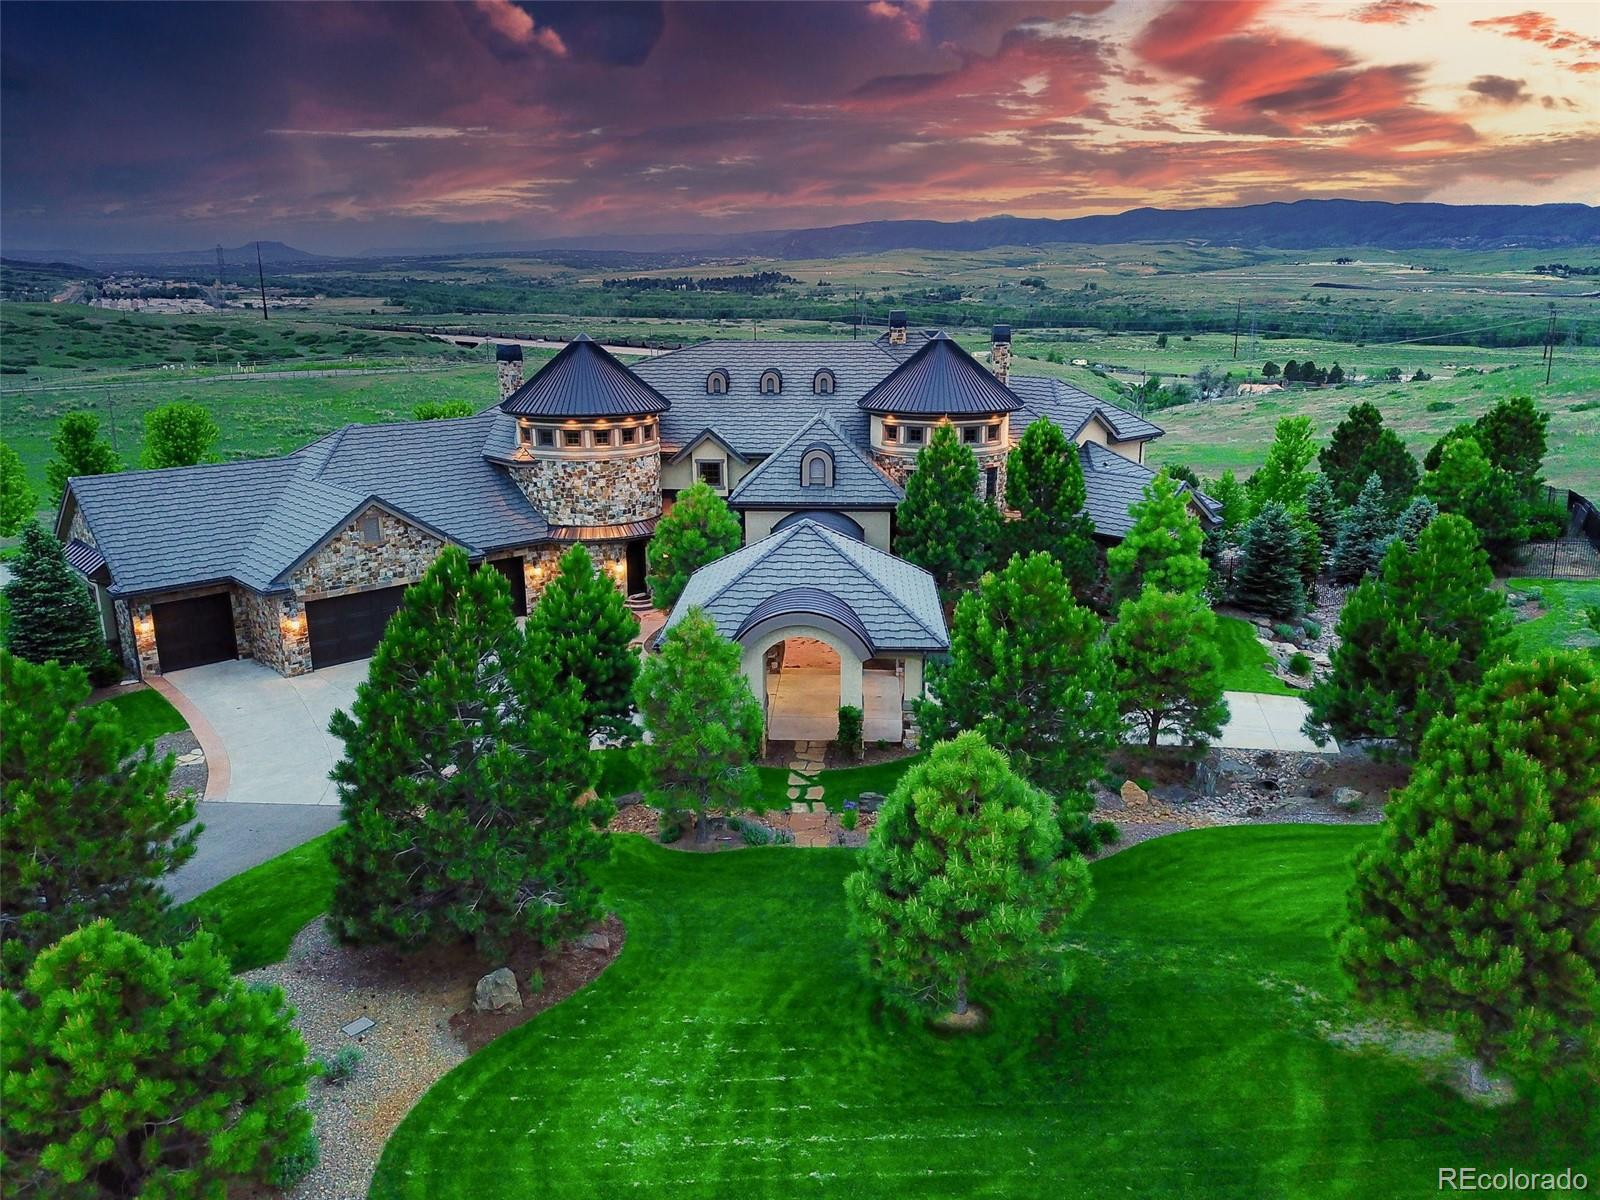 Colorado luxury lifestyle is personified in this exquisite estate on 41.5 acres of unobstructed views of nearby mountains. The 12,488 of finished SqFt boasts 8 bedrooms w/ private bathrooms, most w/ private balconies/patios. A true gourmet/entertainers kitchen is graced w/ a Wolf gas range, 2 Sub-Zero refrigerators, 2 Asco dishwashers, and a Butlers pantry that includes another refrigerator & dishwasher and leads to a large, formal dining area. The massive kitchen island flows to a large breakfast area, then on to a magnificent 2 story great room, focusing on a massive stone fireplace and a full wet bar to host gatherings w/ family and friends. The primary bedroom suite, private to the west wing, includes fireplace, balcony, 5 piece bath w/ Jacuzzi air tub, heated floors, large-walk in closets and is accessed by stair or elevator through the mater suite sitting room w/ its own wet bar and dishwasher. Features include 2 elevators, a 2 story formal office, 5 fireplaces, and conveyor belt to transport groceries from the garage to kitchen! Guests will love the 2 bed/2 bath mother-in-law suite w/ full kitchen, fireplace, balcony, laundry room, all accessed by its own private entry and elevator. The walkout basement w/ wet bar, workout room, gaming area (extra ventilation), 2 bedrooms w/ private baths and a theater room create perfect entertaining space! An auto lover's dream, the home comes w/ an 8 car attached pass through garage, PLUS a detached 8 car pass through garage with 1,161 of finished SqFt above (recreation area w/ pool table, kitchenette). The property hosts a full size illuminated basketball/tennis court, lush landscaping w/ water feature, fire pit, and 41.5 sprawling acres to enjoy the freedom to ride horses or ATVs & is zoned for agricultural use. This home includes 5 HVAC systems, 4 tankless water heaters, electronic entry gate, heated drive & and security system. Rural but minutes to light rail, and short drive to downtown Denver. Agent related to Seller